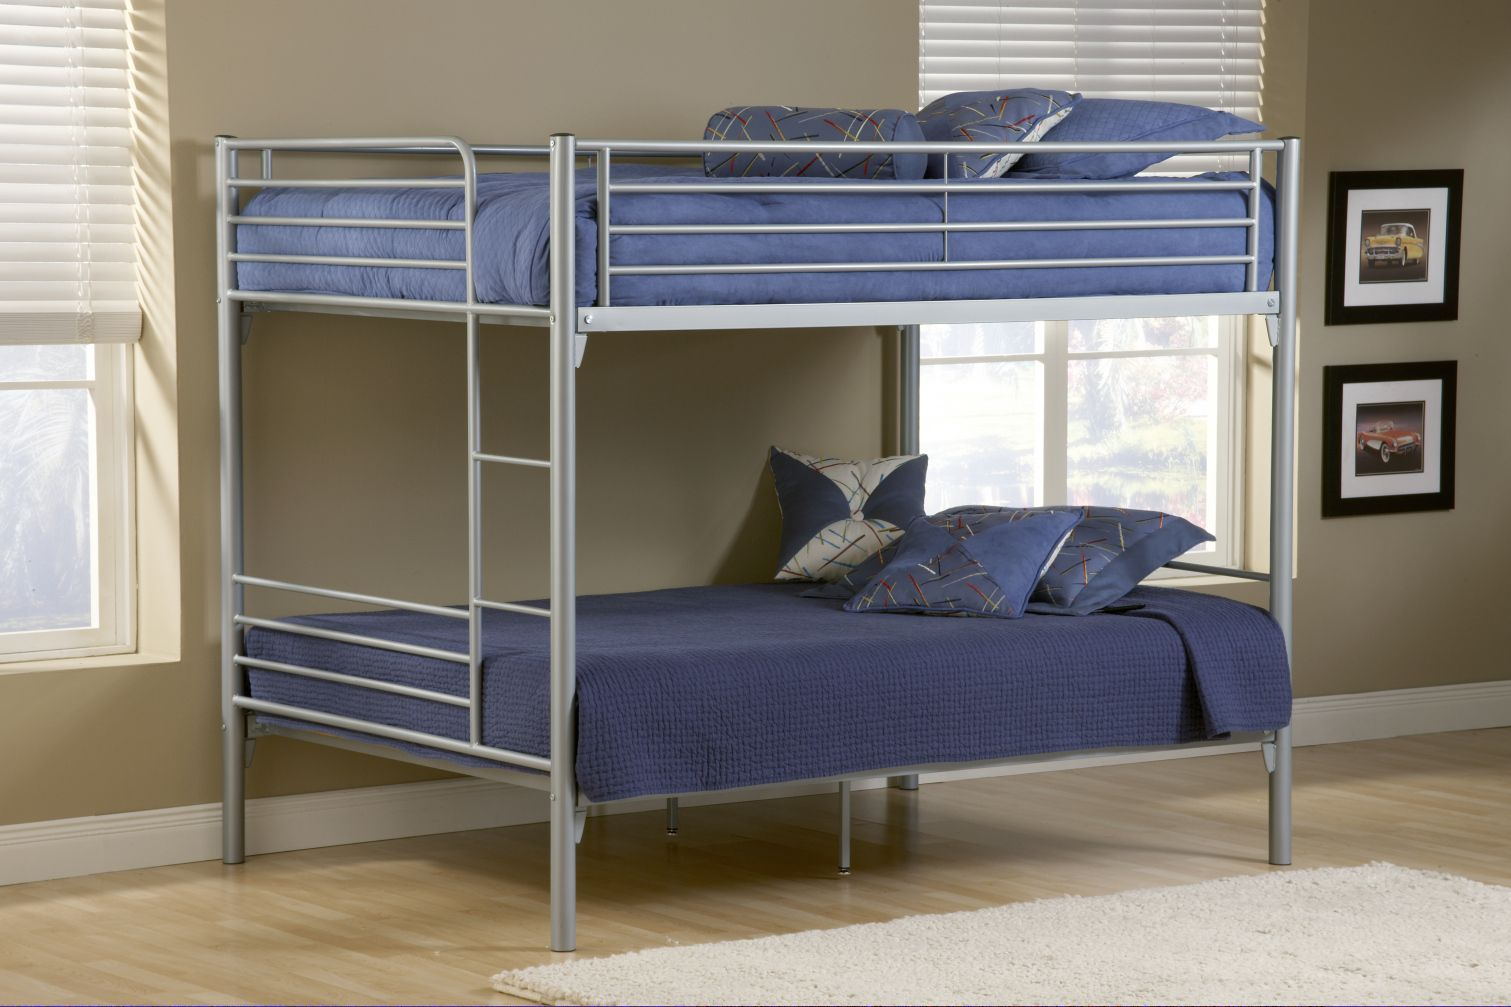 30 Full Size Bunk Bed Mattress Sale Interior Bedroom Design